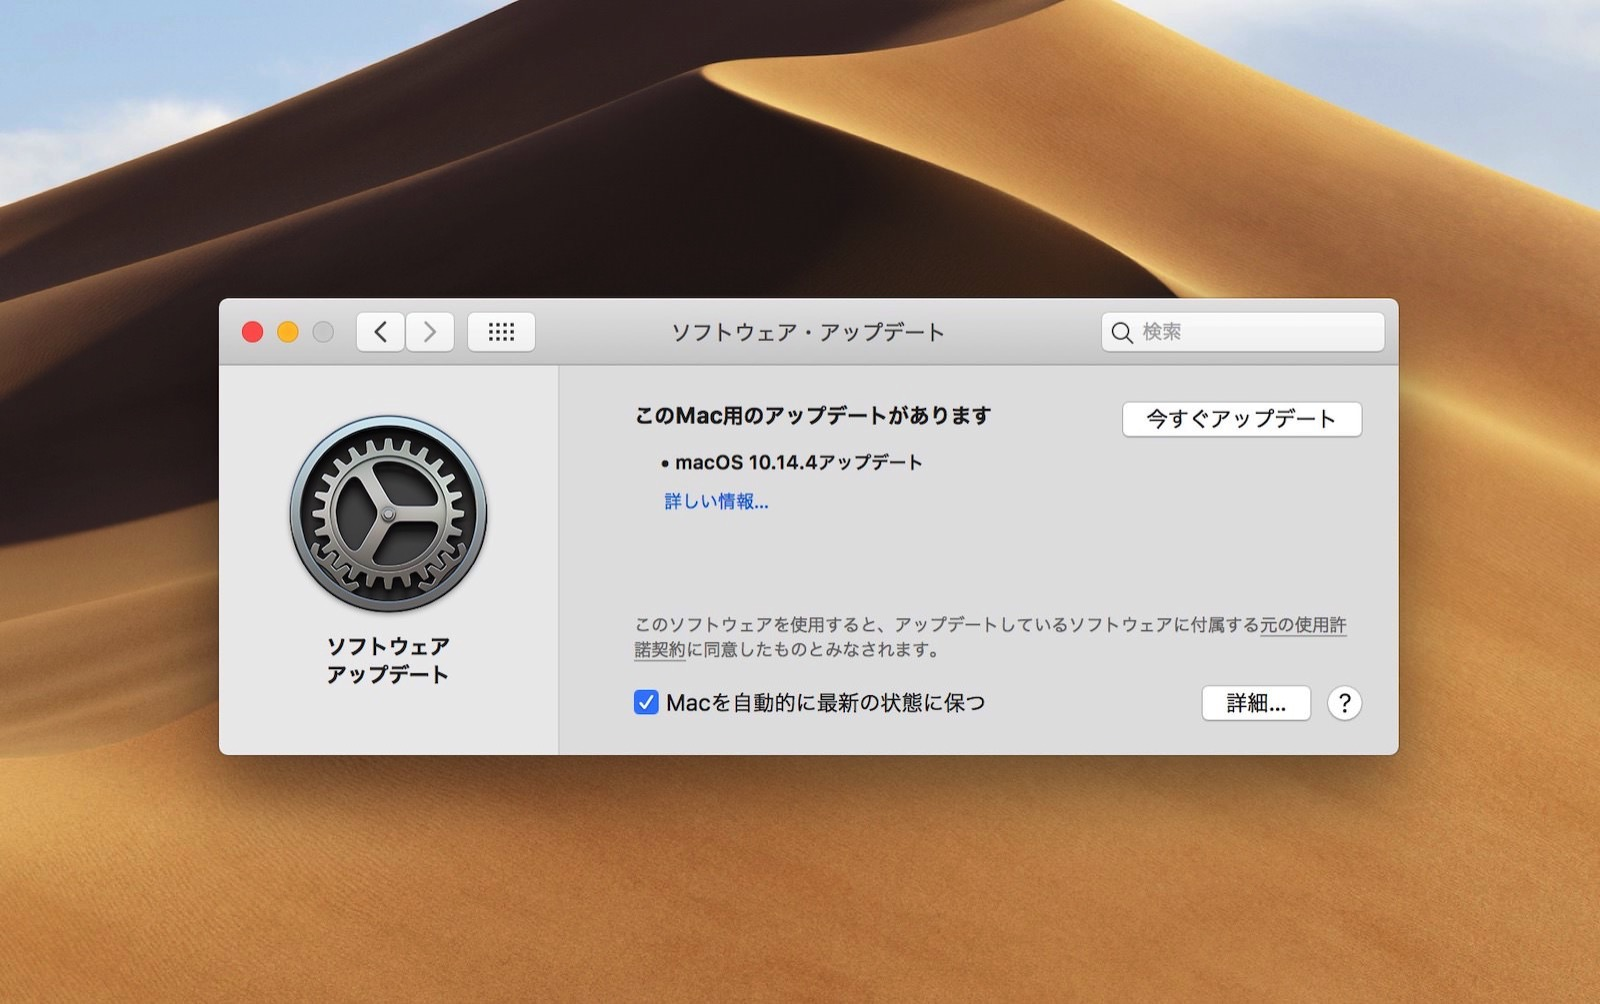 Macos mojave release